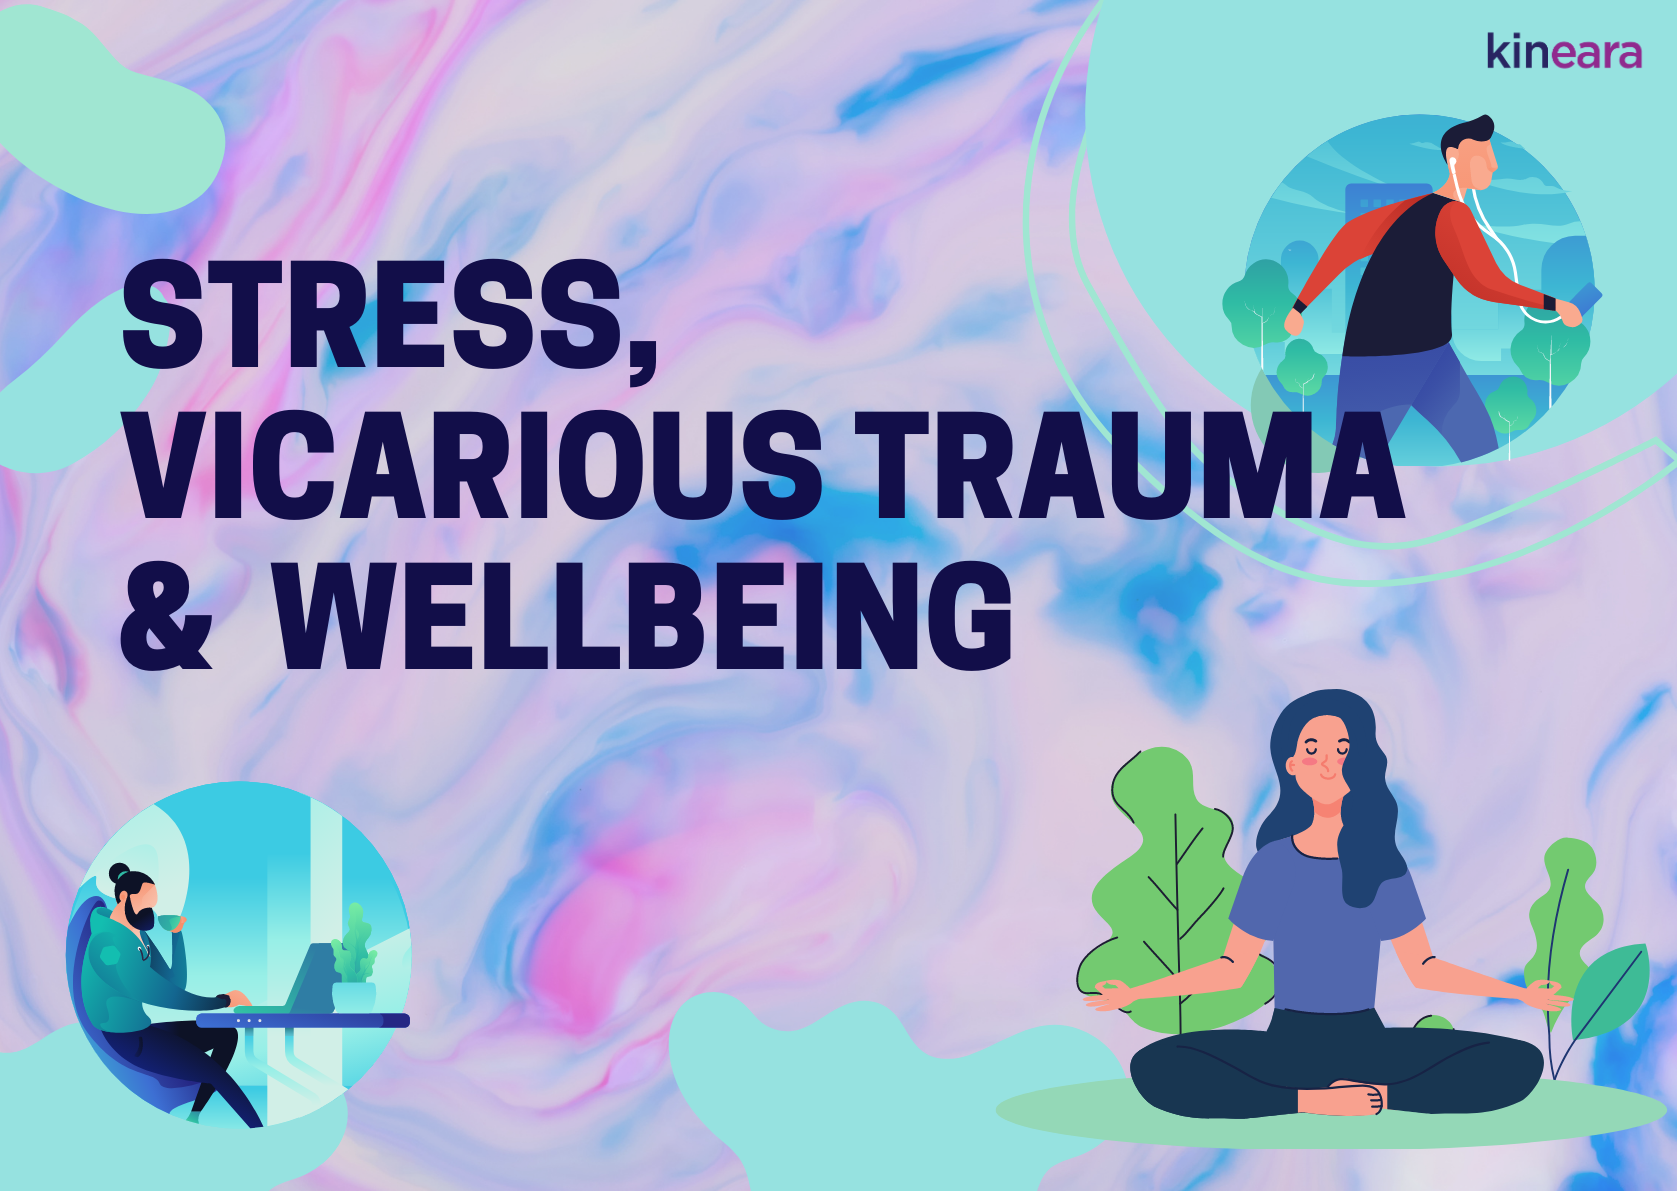 Practitioner Insights: Reflecting on the 'Stress, Vicarious Trauma and Managing Wellbeing' training by Homeless Link